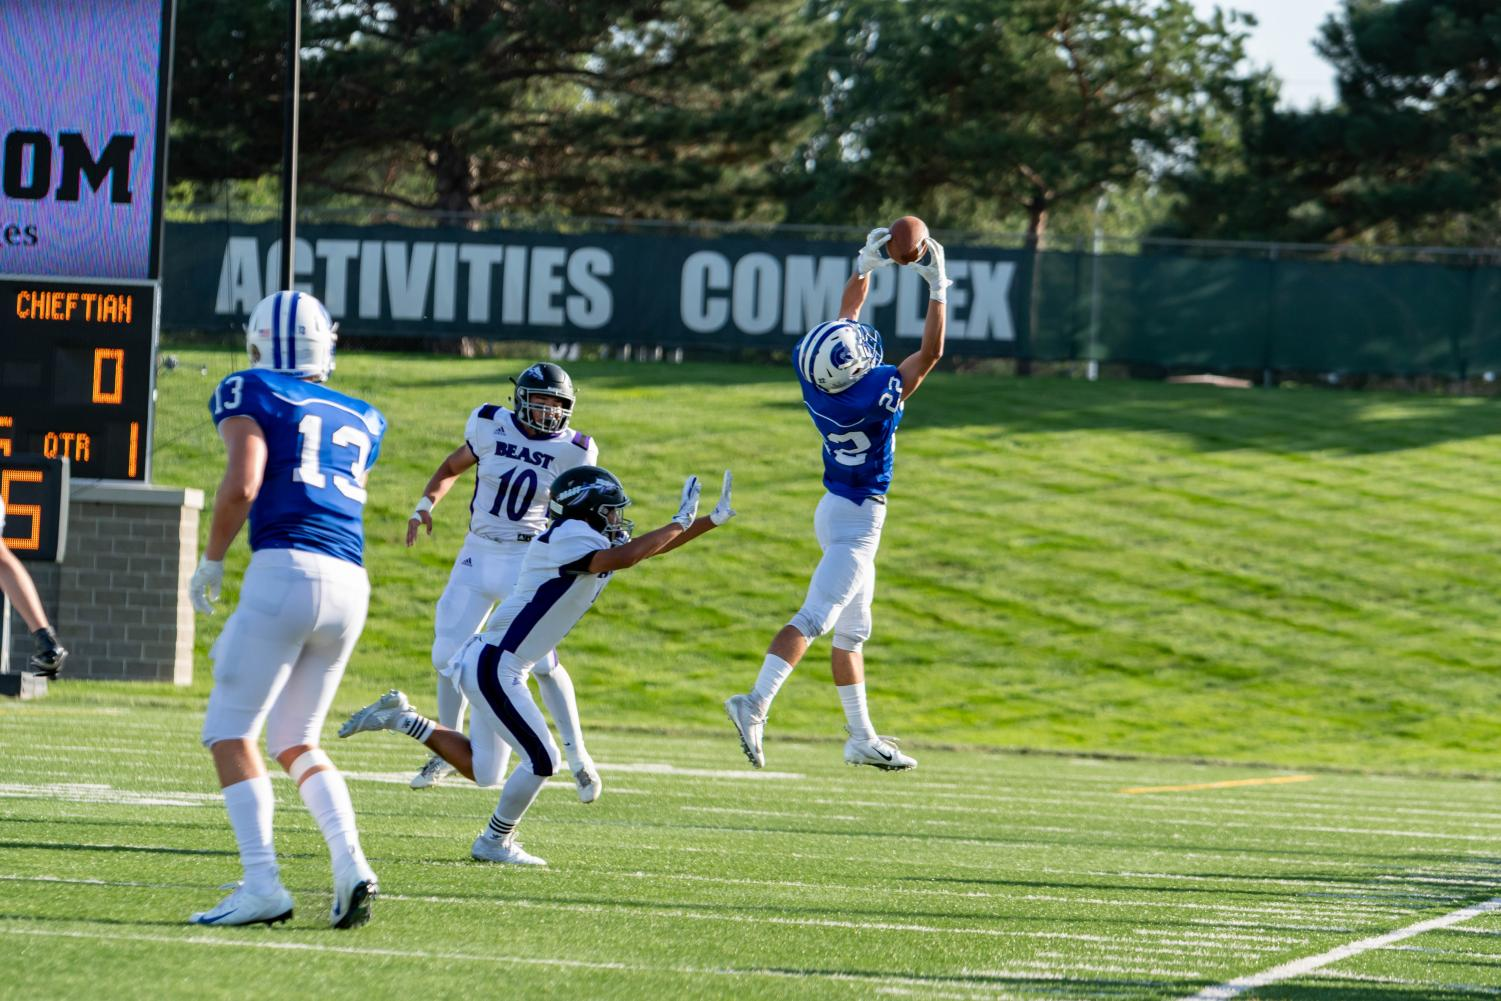 Lincoln East receiver Kaleb Brady extends for a catch against Bellevue East Thursday afternoon.